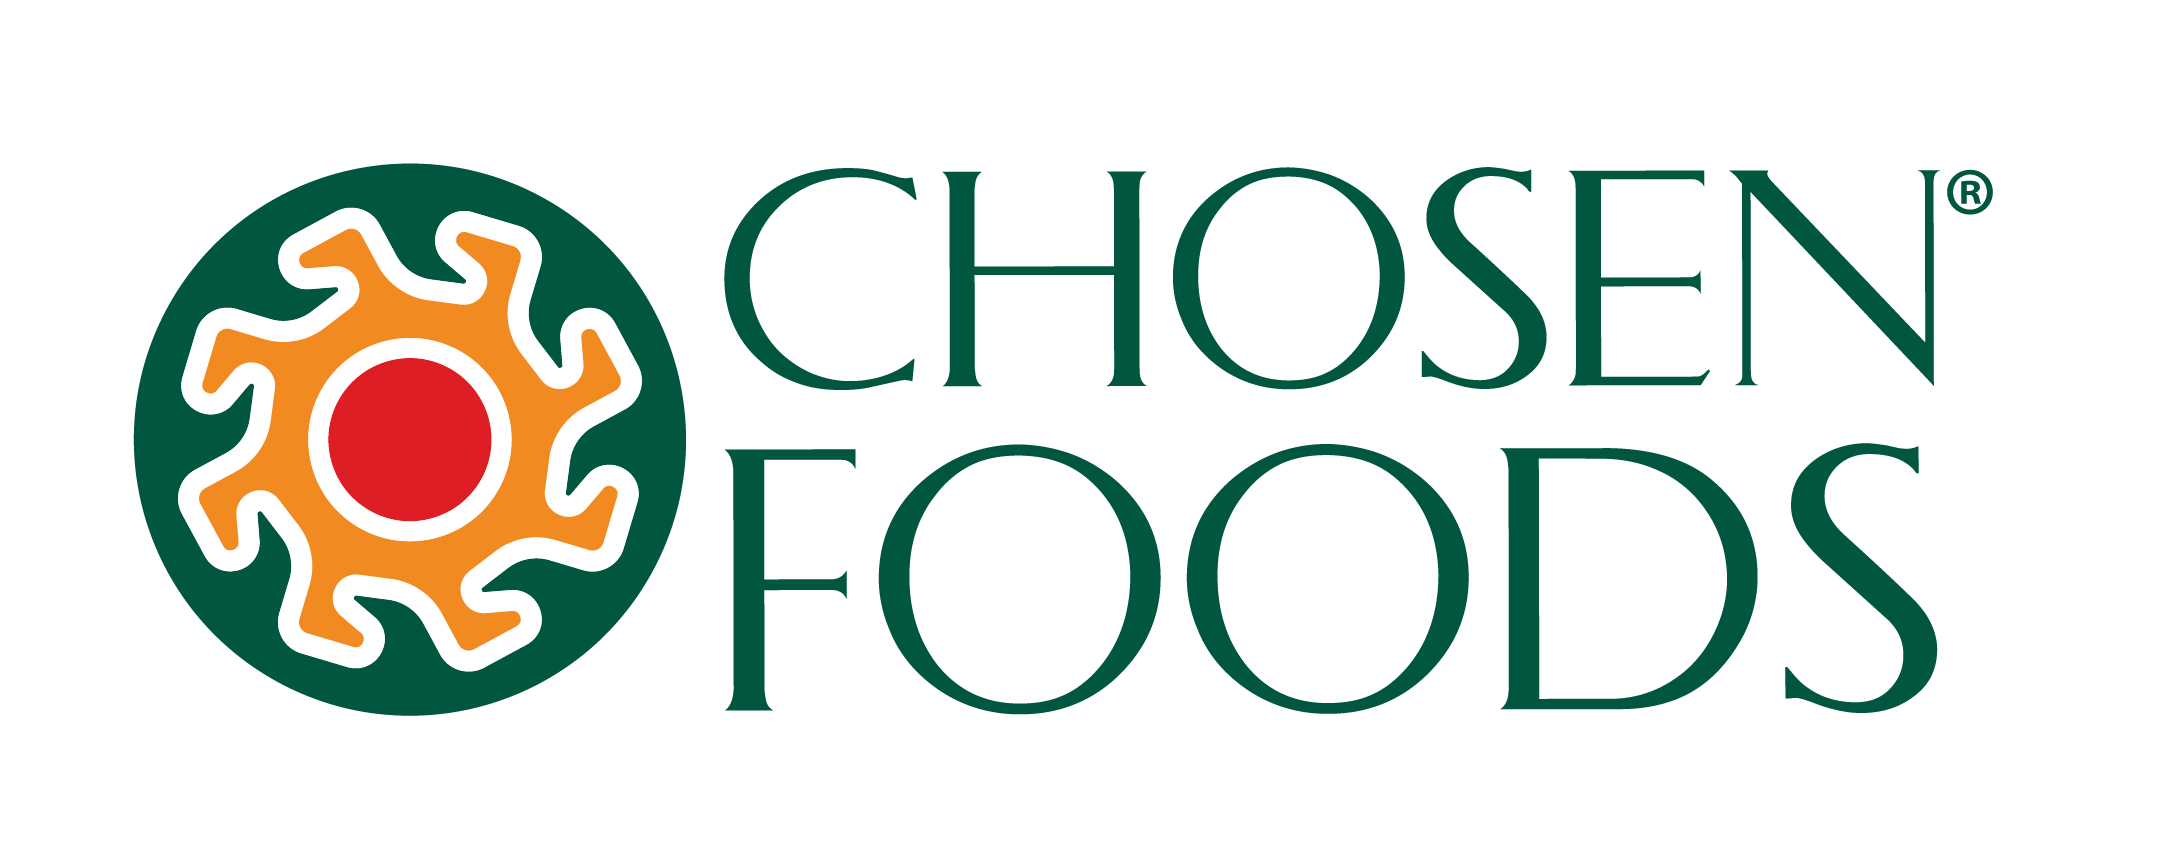 CHOSEN_FOODS_VECTOR.png